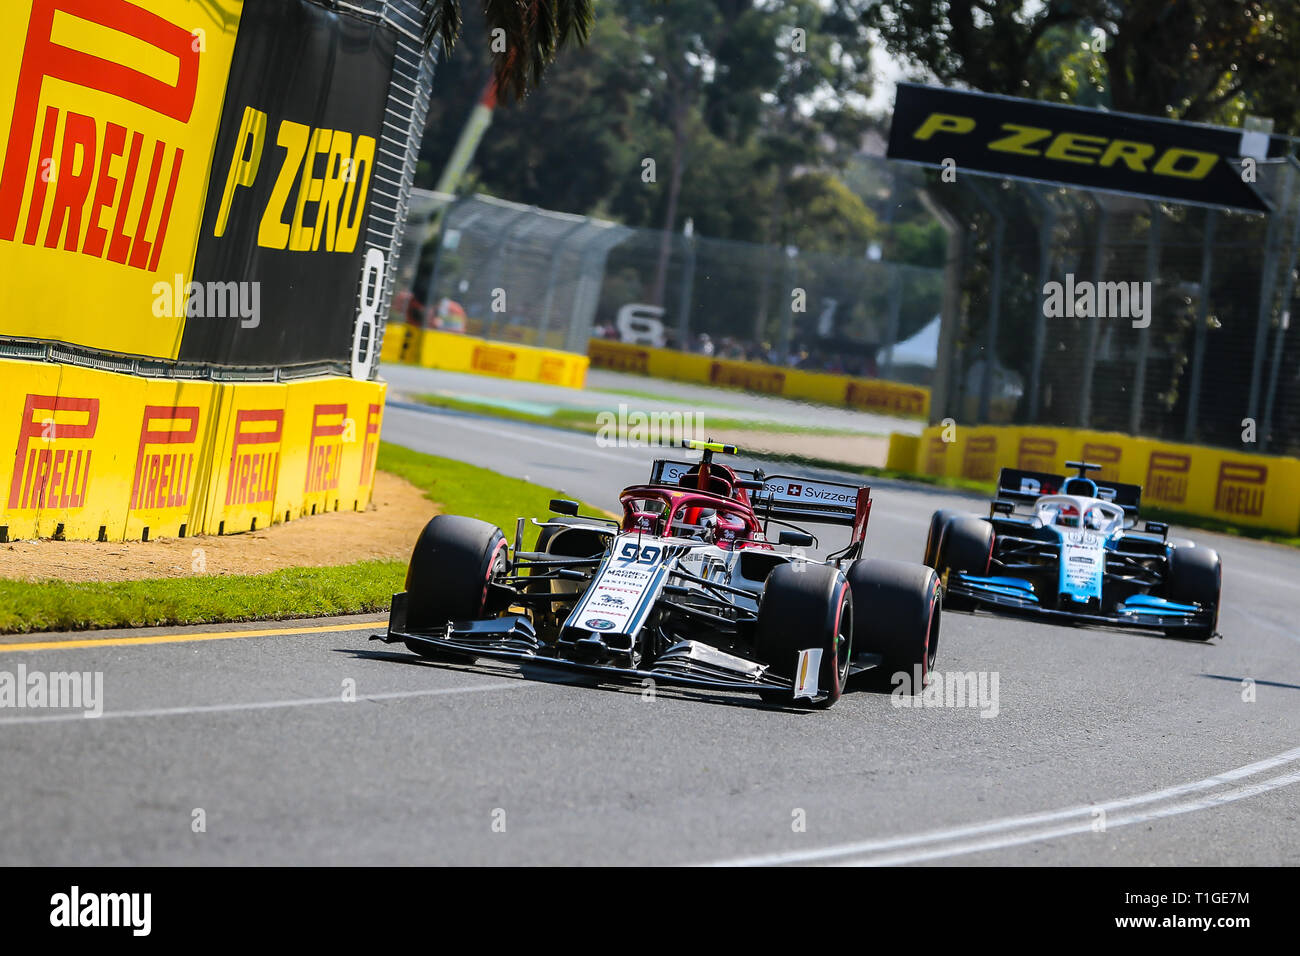 MELBOURNE, AUSTRALIA - MARCH 16: Kimi Raikkonen of Alfa